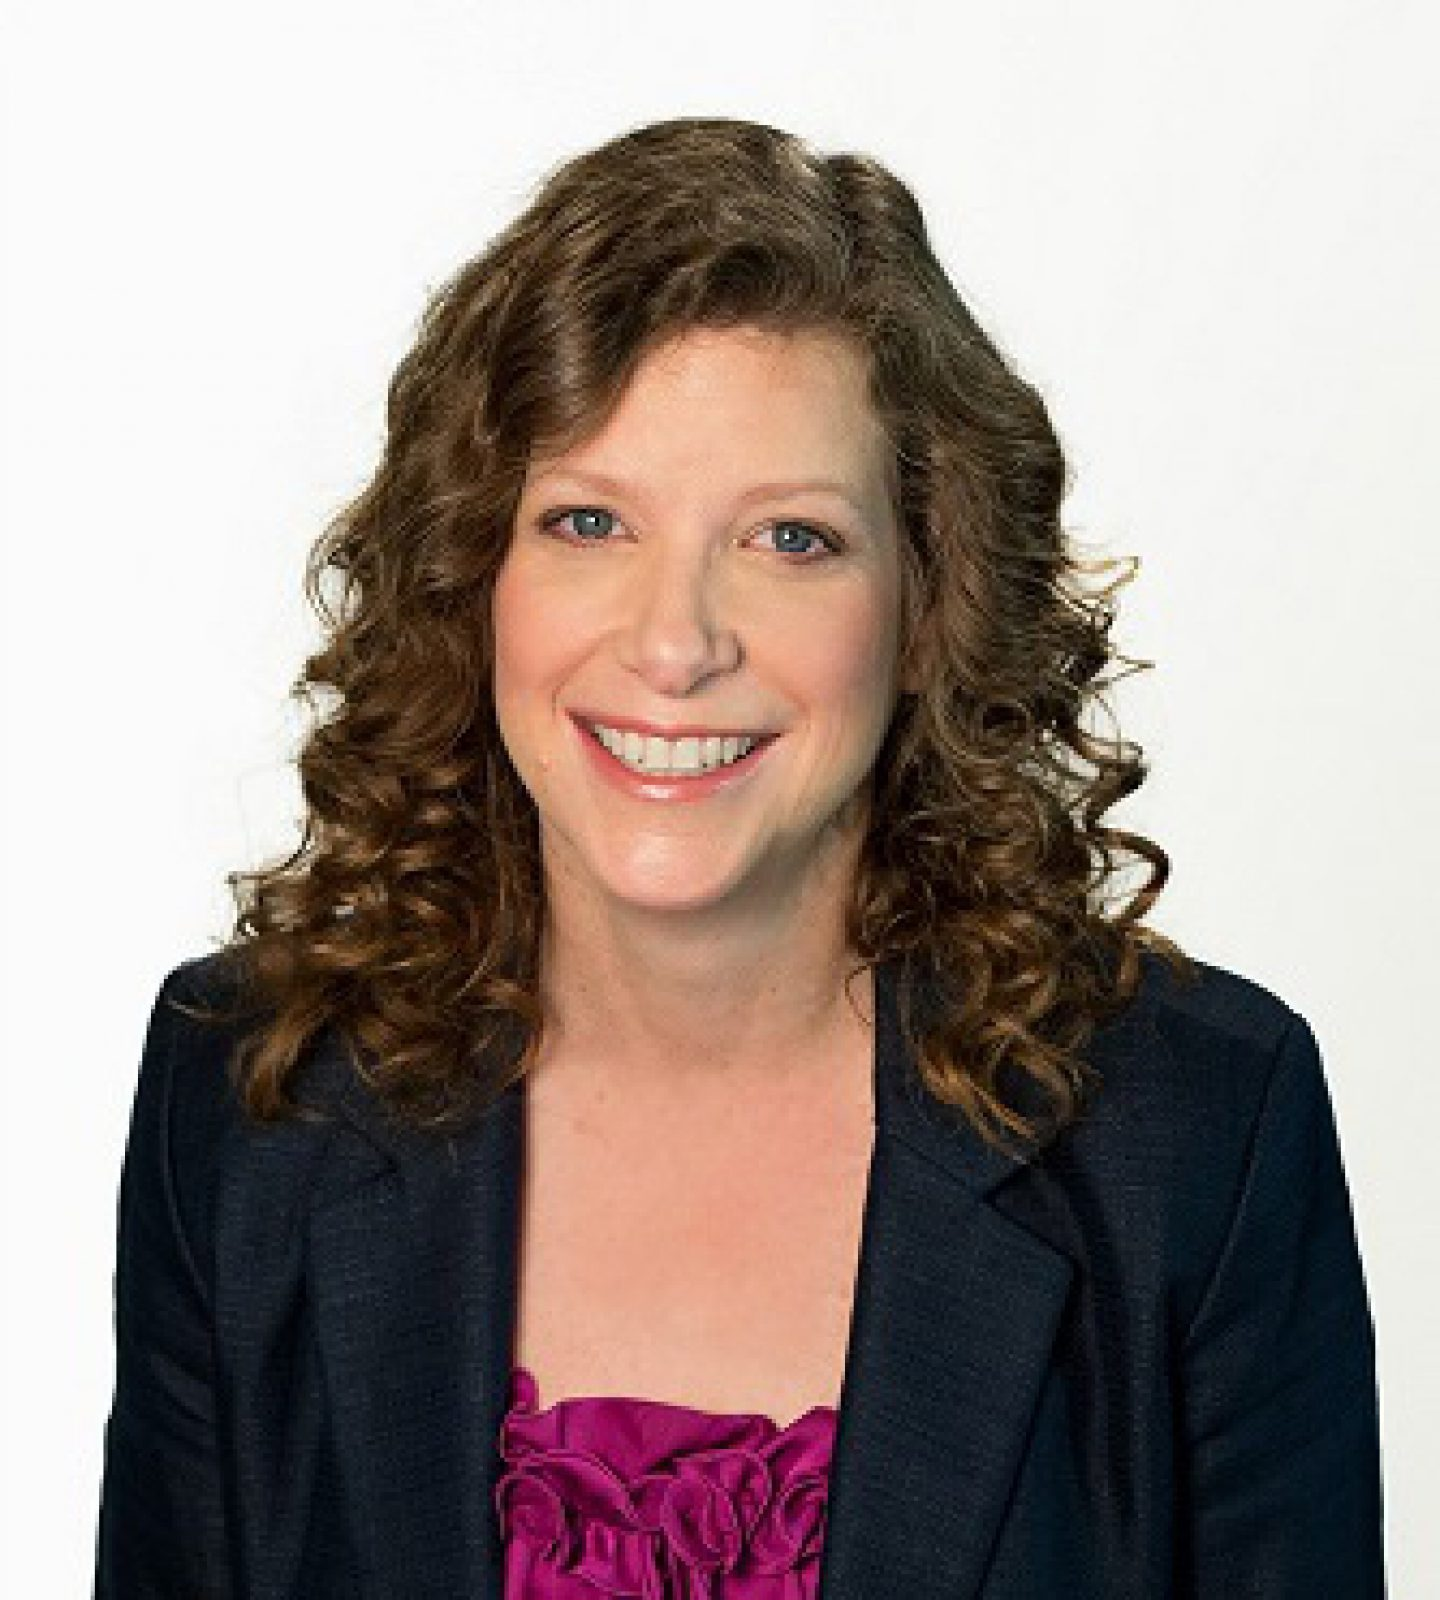 Profile photo for Jennie G. Noll, Ph.D.